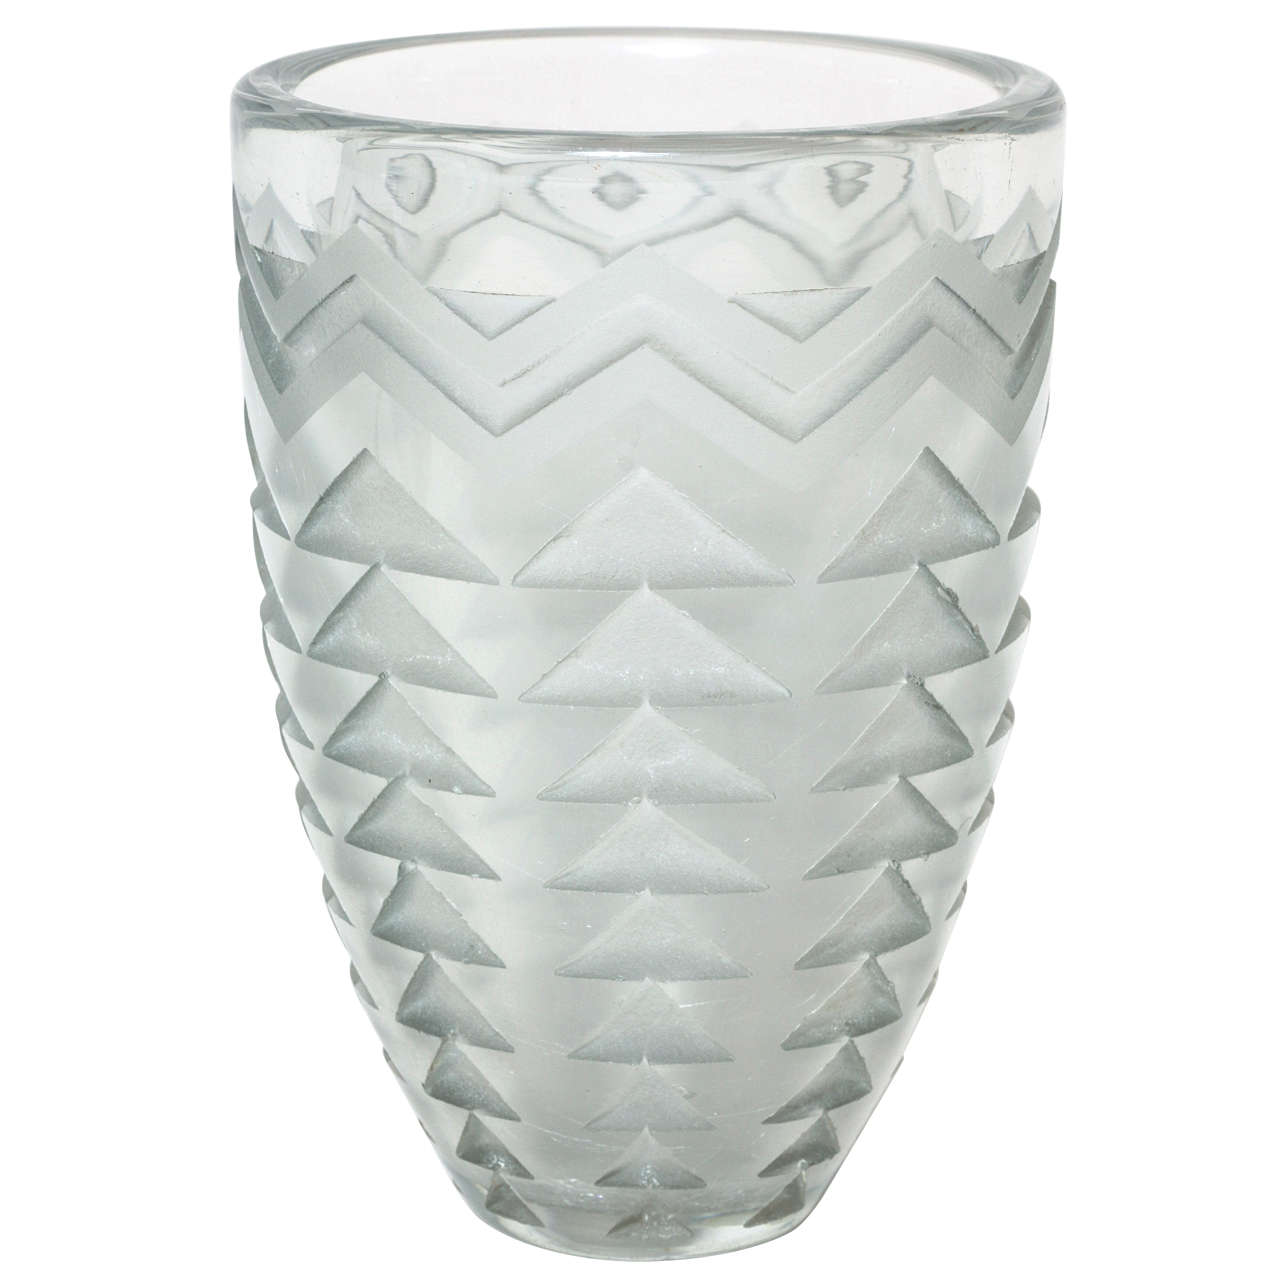 Jean Luce French Art Deco Clear Etched Glass Vase